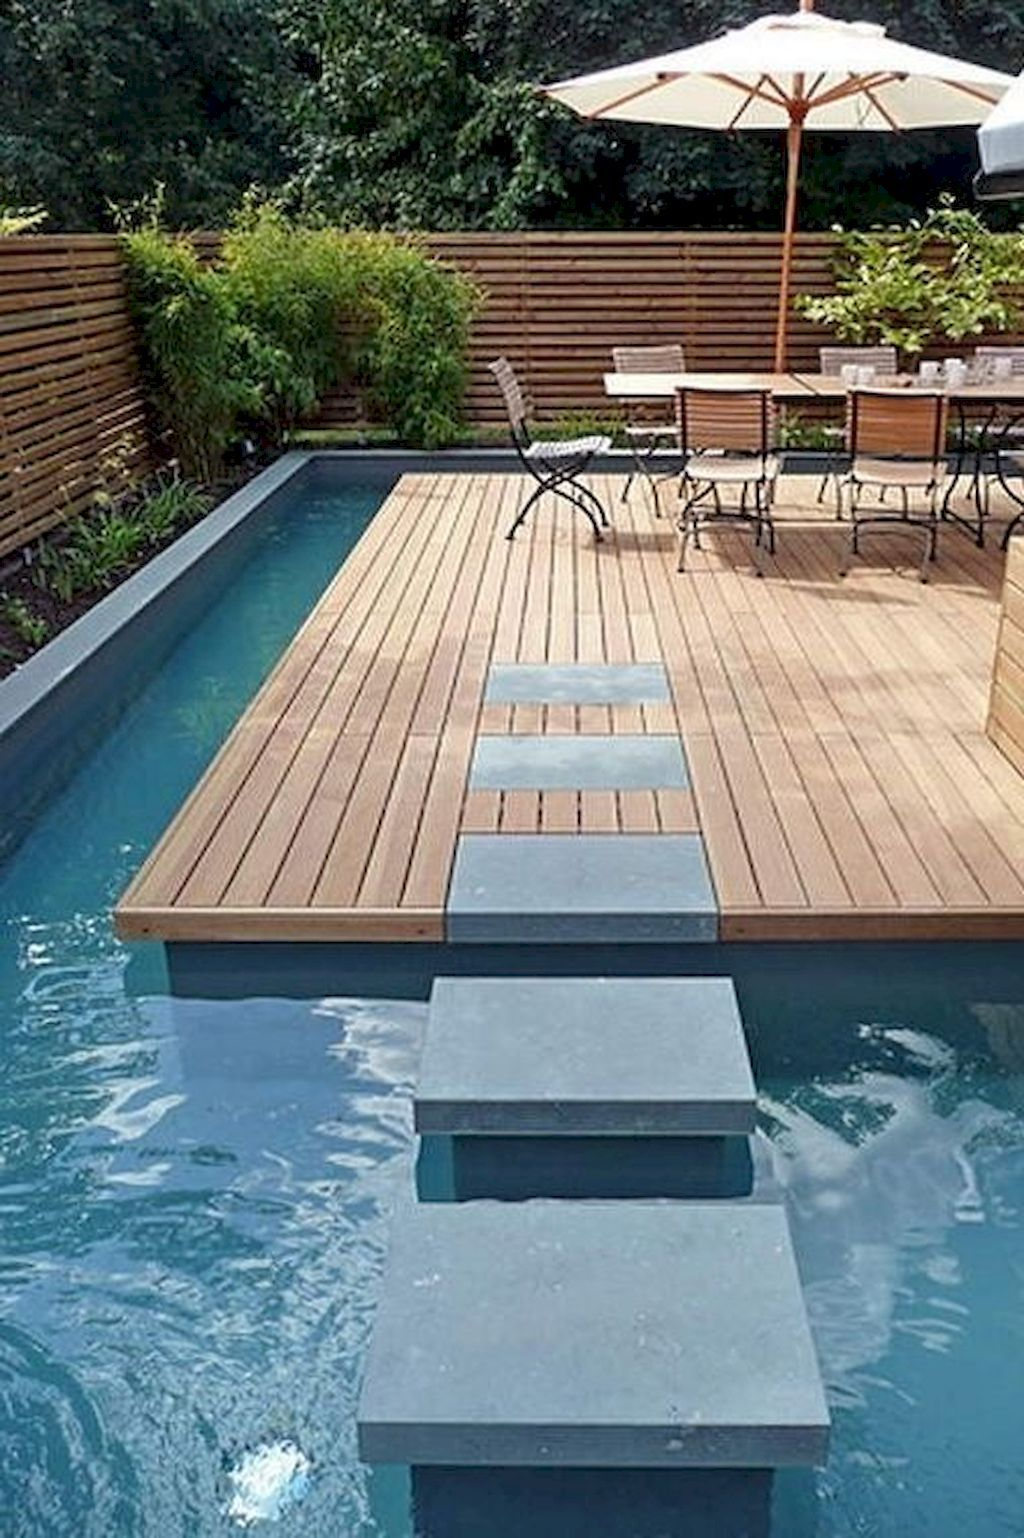 Swimming Pool Designs For Maximum Fun And Enjoyment Pool